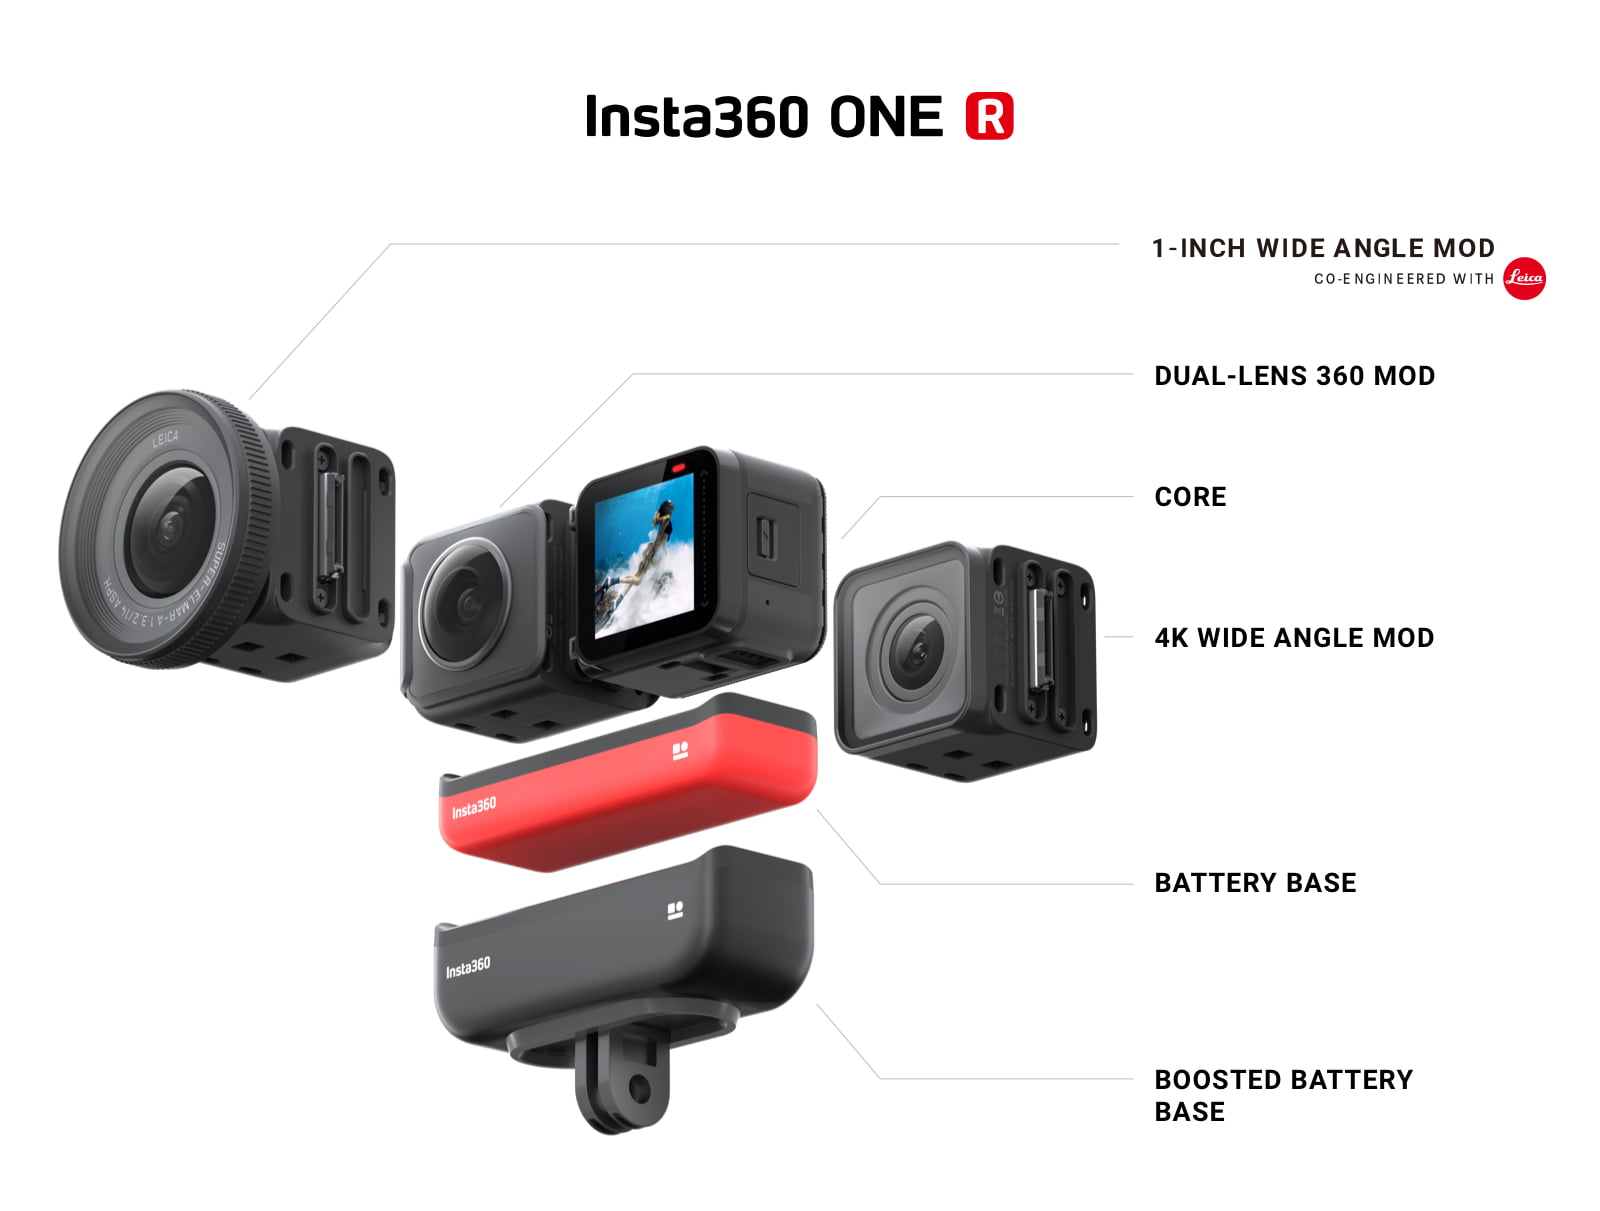 Insta360 One R modular view